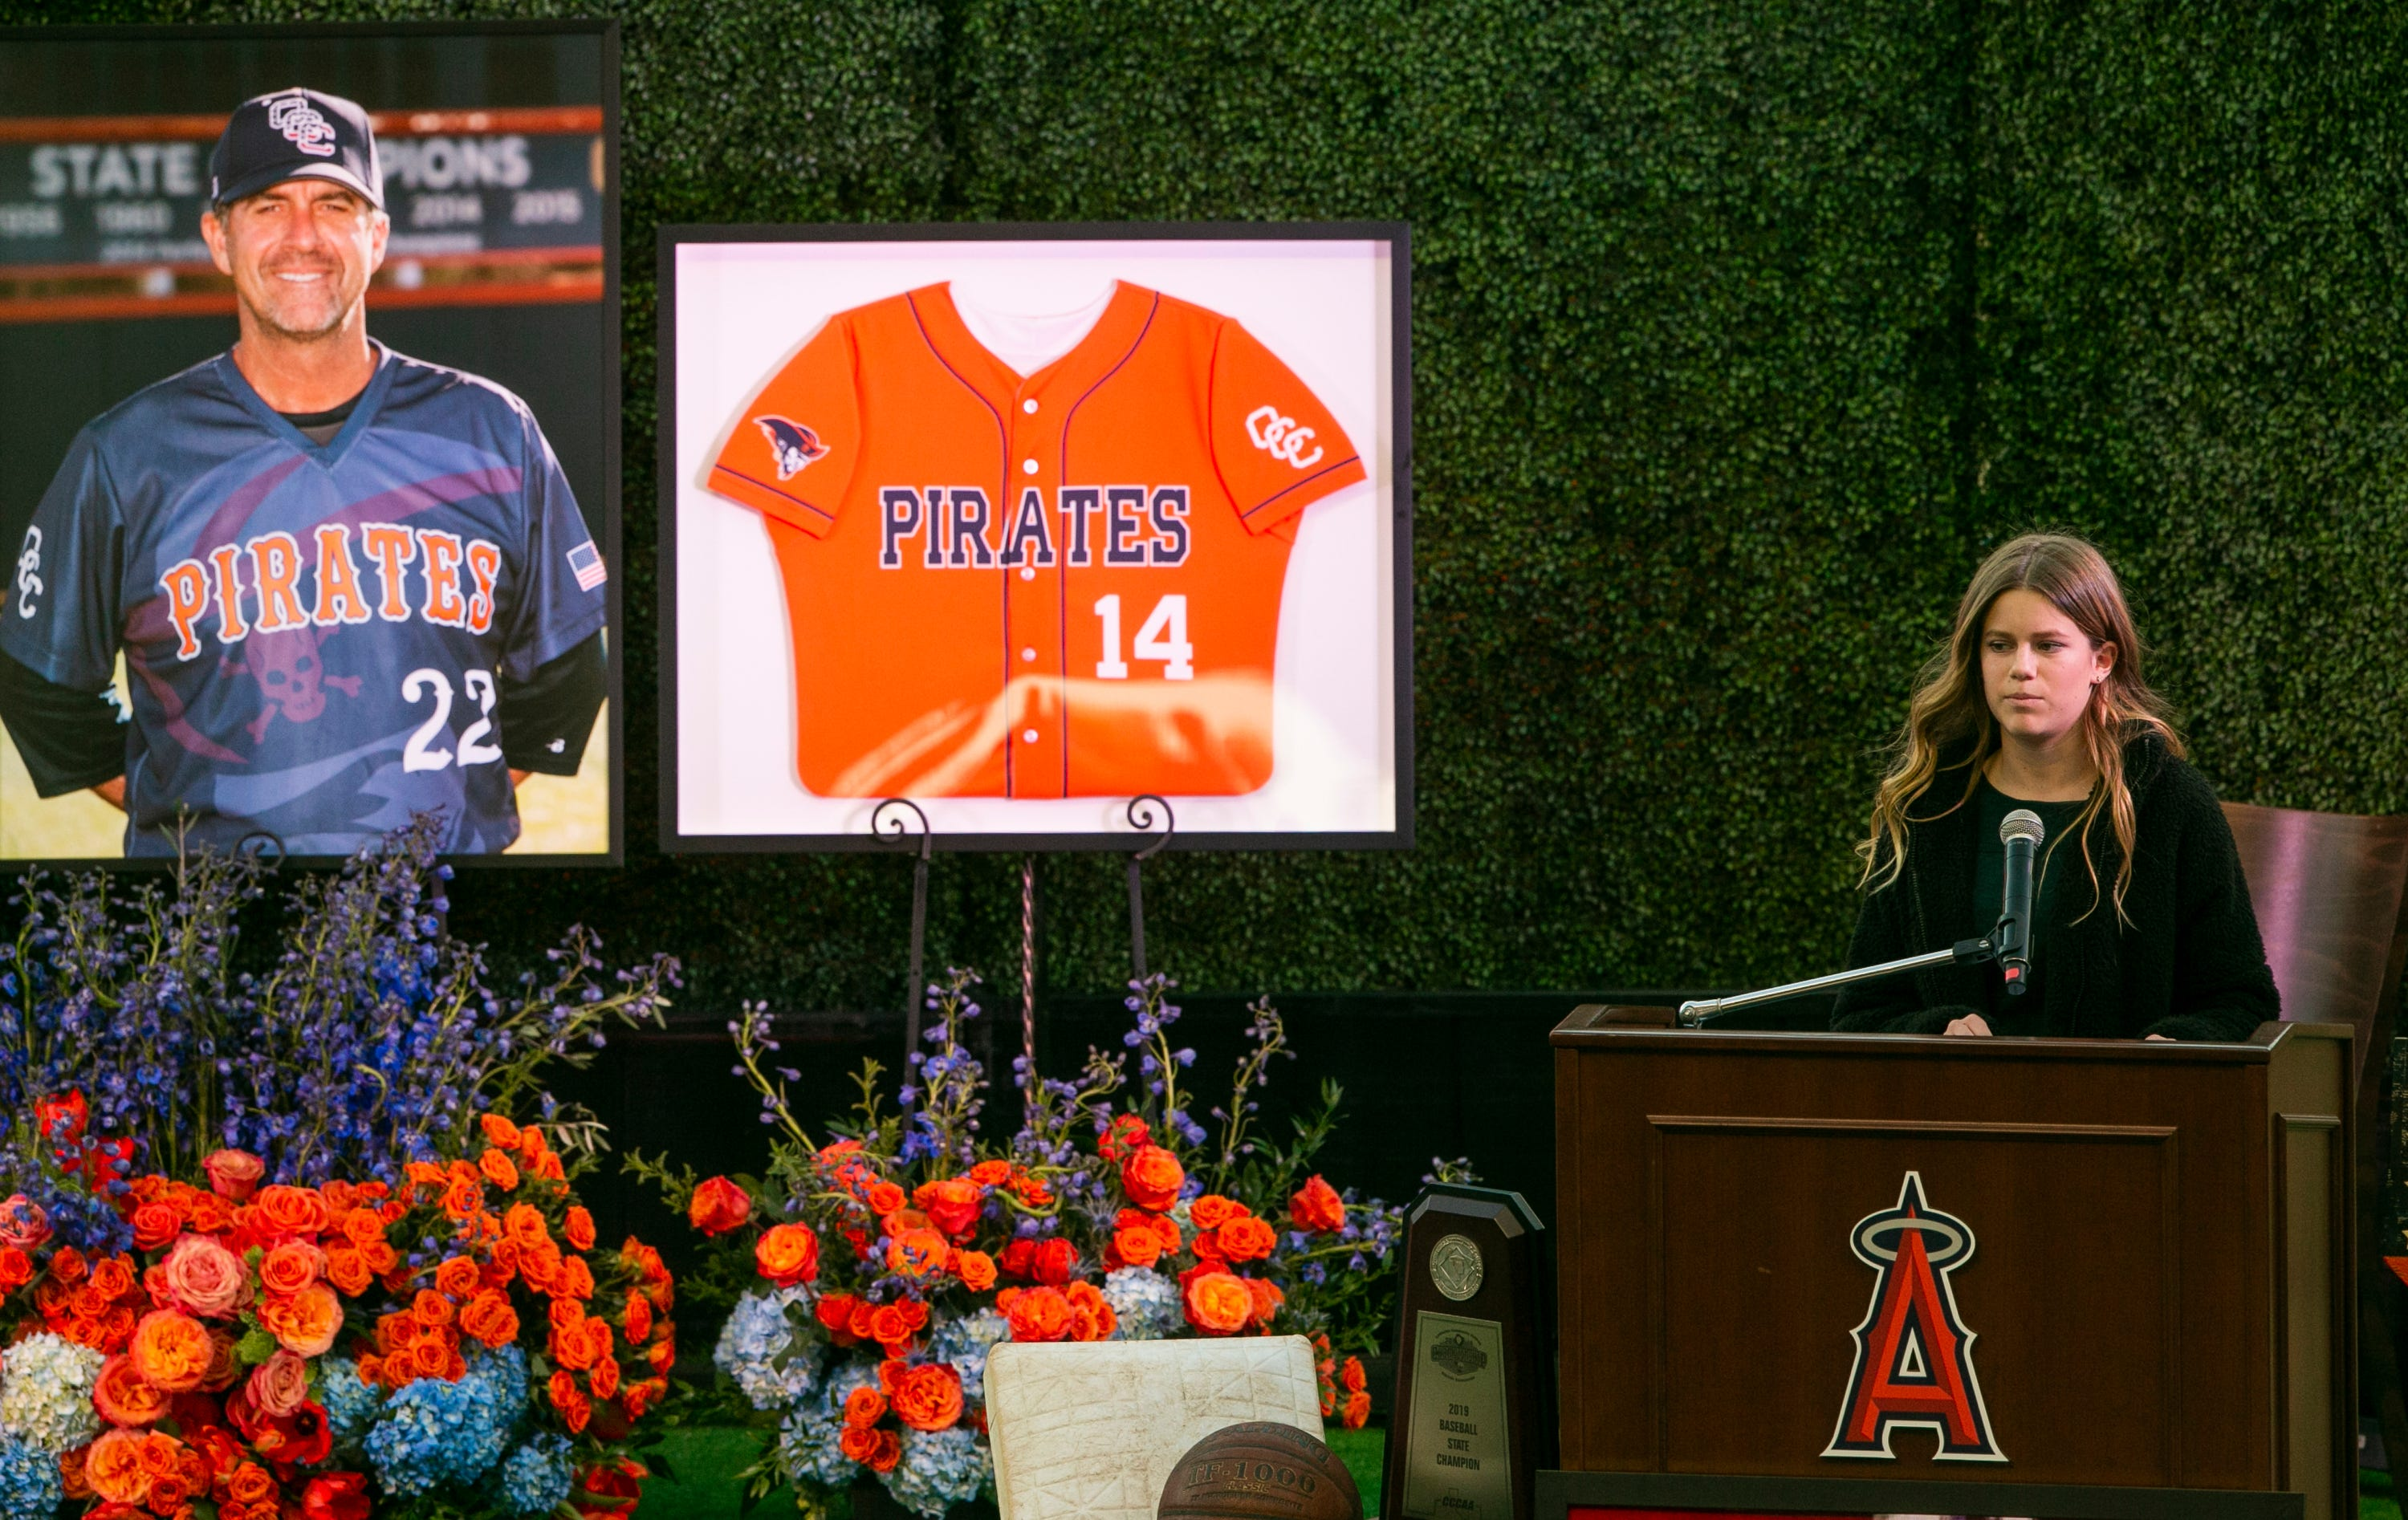 Angels are looking down on us : Altobelli family members who died in helicopter crash remembered at Angel Stadium